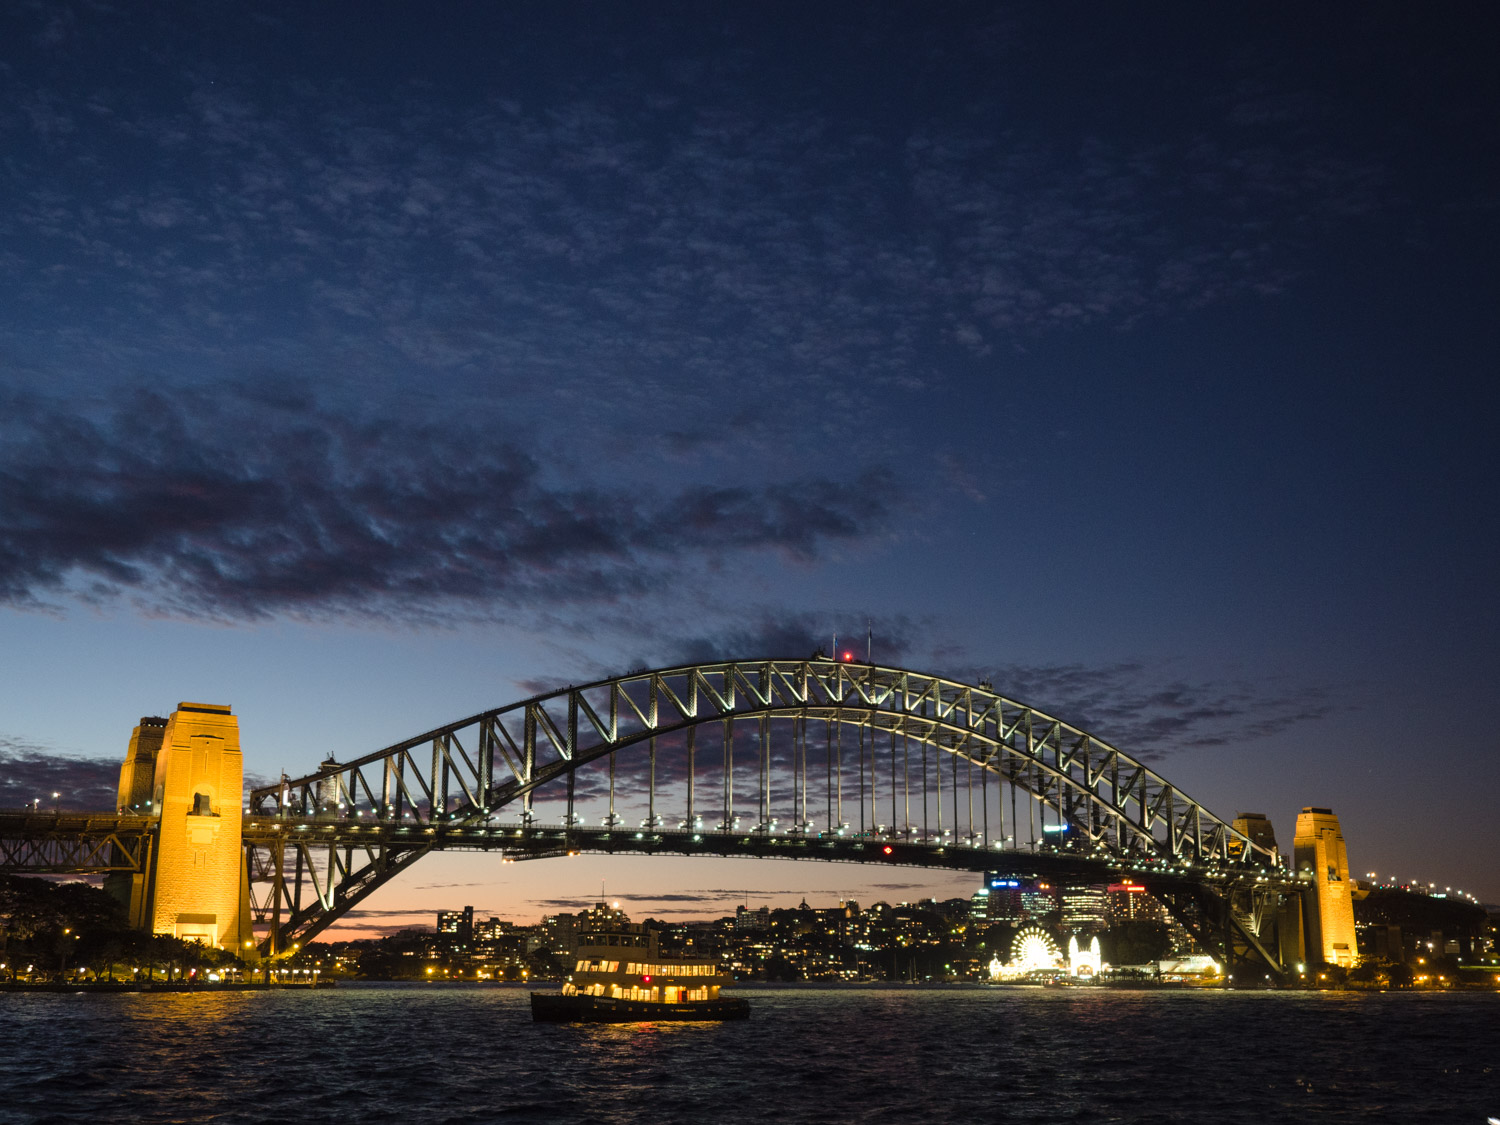 Wonerful cloud formations over the Harbour Bridge in Sydney.